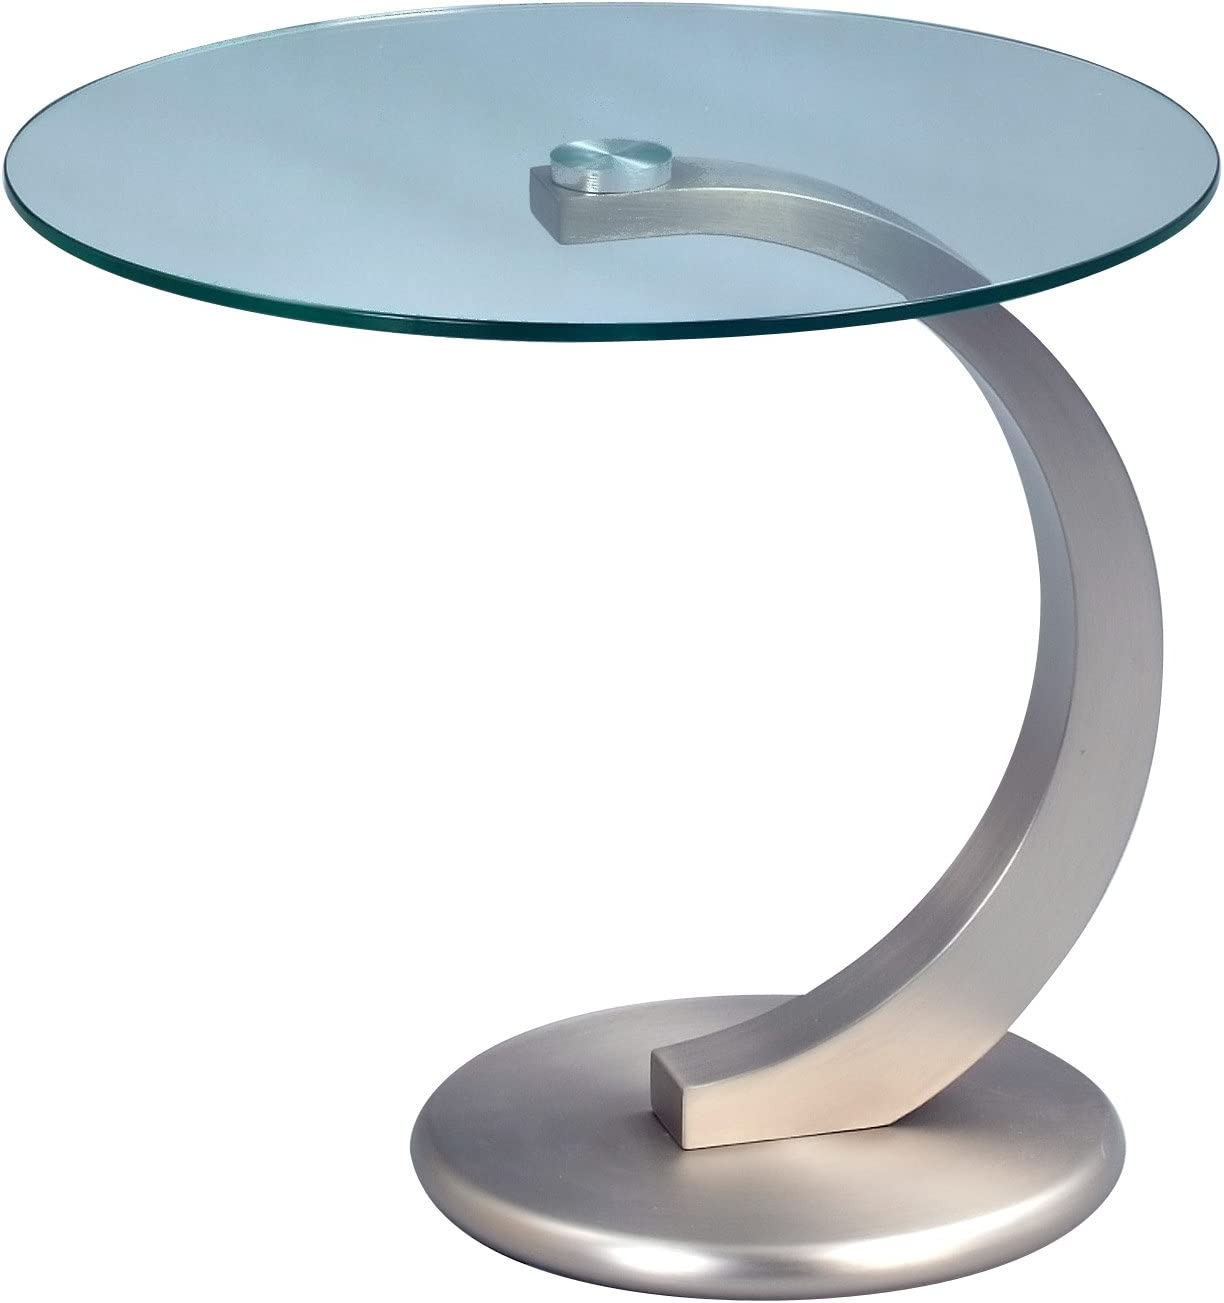 Metal Stainless Steel Effect HomeTrends4You 531188 Side Table 48 x 46 x 38 cm